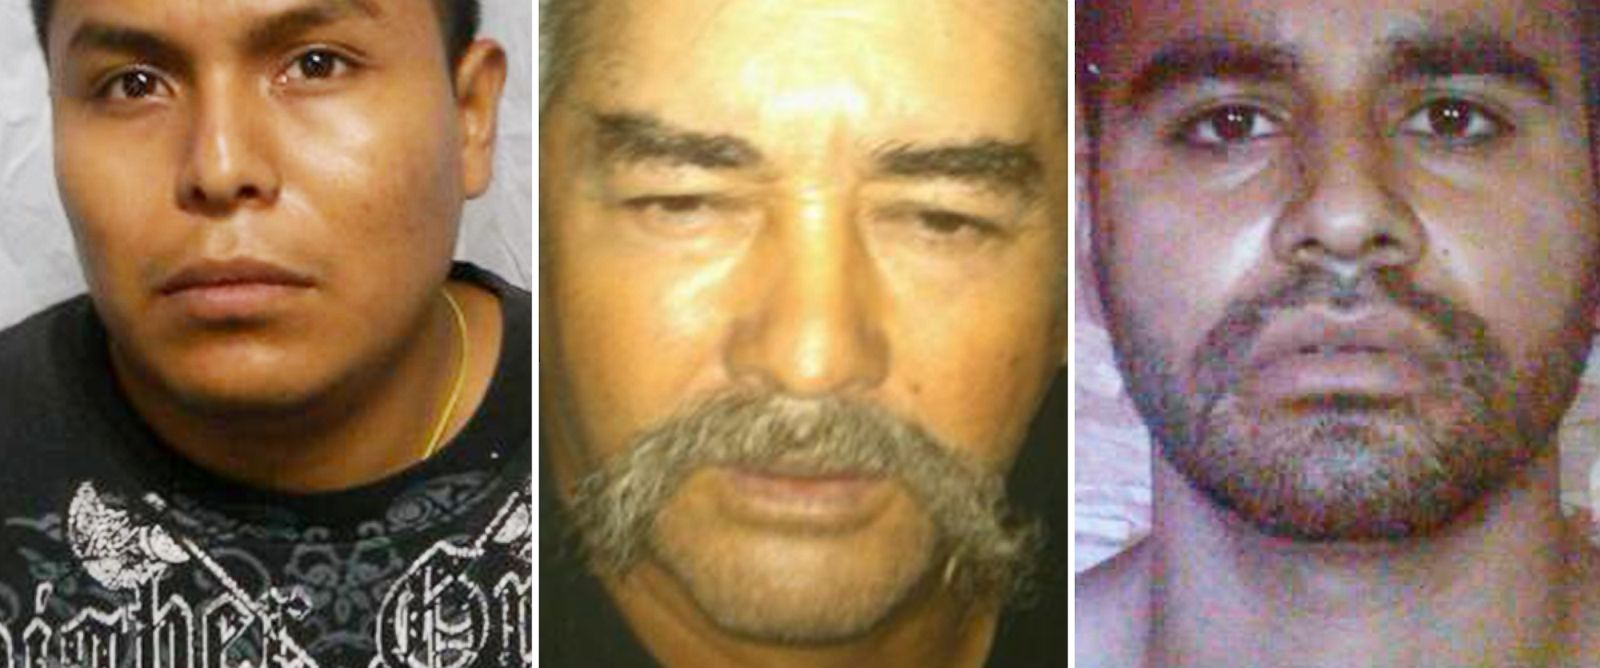 PHOTO: Luis Castro-Villeda, 22, Ruben Ceja-Renjal, 57, and Juan Manuel Fuentes-Morales, 26, were arrested by federal agents in connection with the rescue of a kidnapping victim believed to be a courier for a Mexican drug cartel.